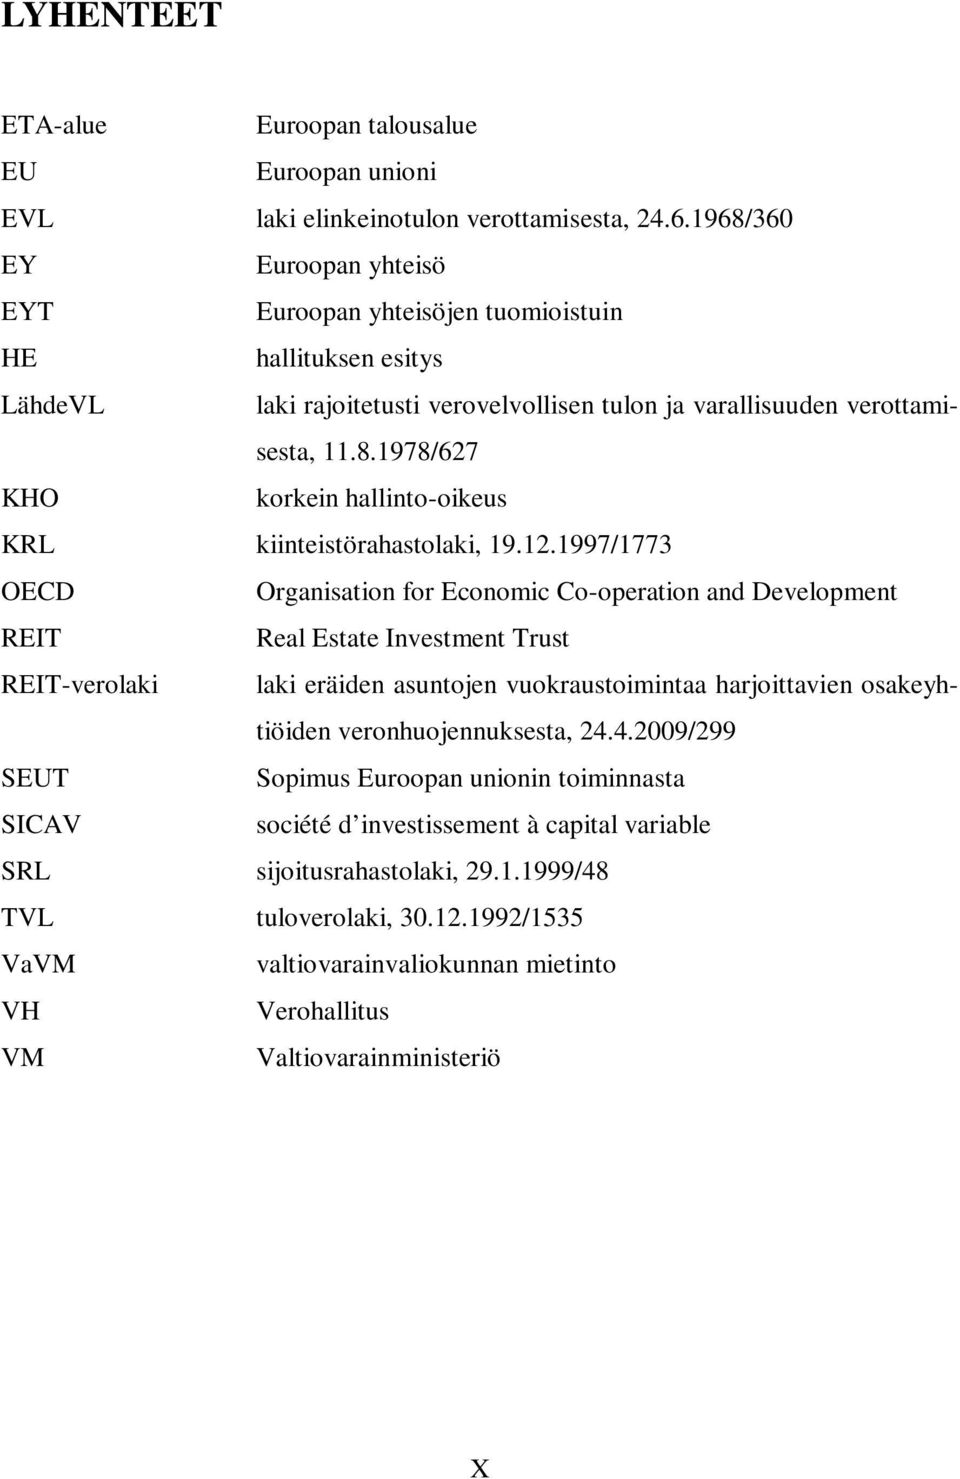 12.1997/1773 OECD Organisation for Economic Co-operation and Development REIT Real Estate Investment Trust REIT-verolaki laki eräiden asuntojen vuokraustoimintaa harjoittavien osakeyhtiöiden